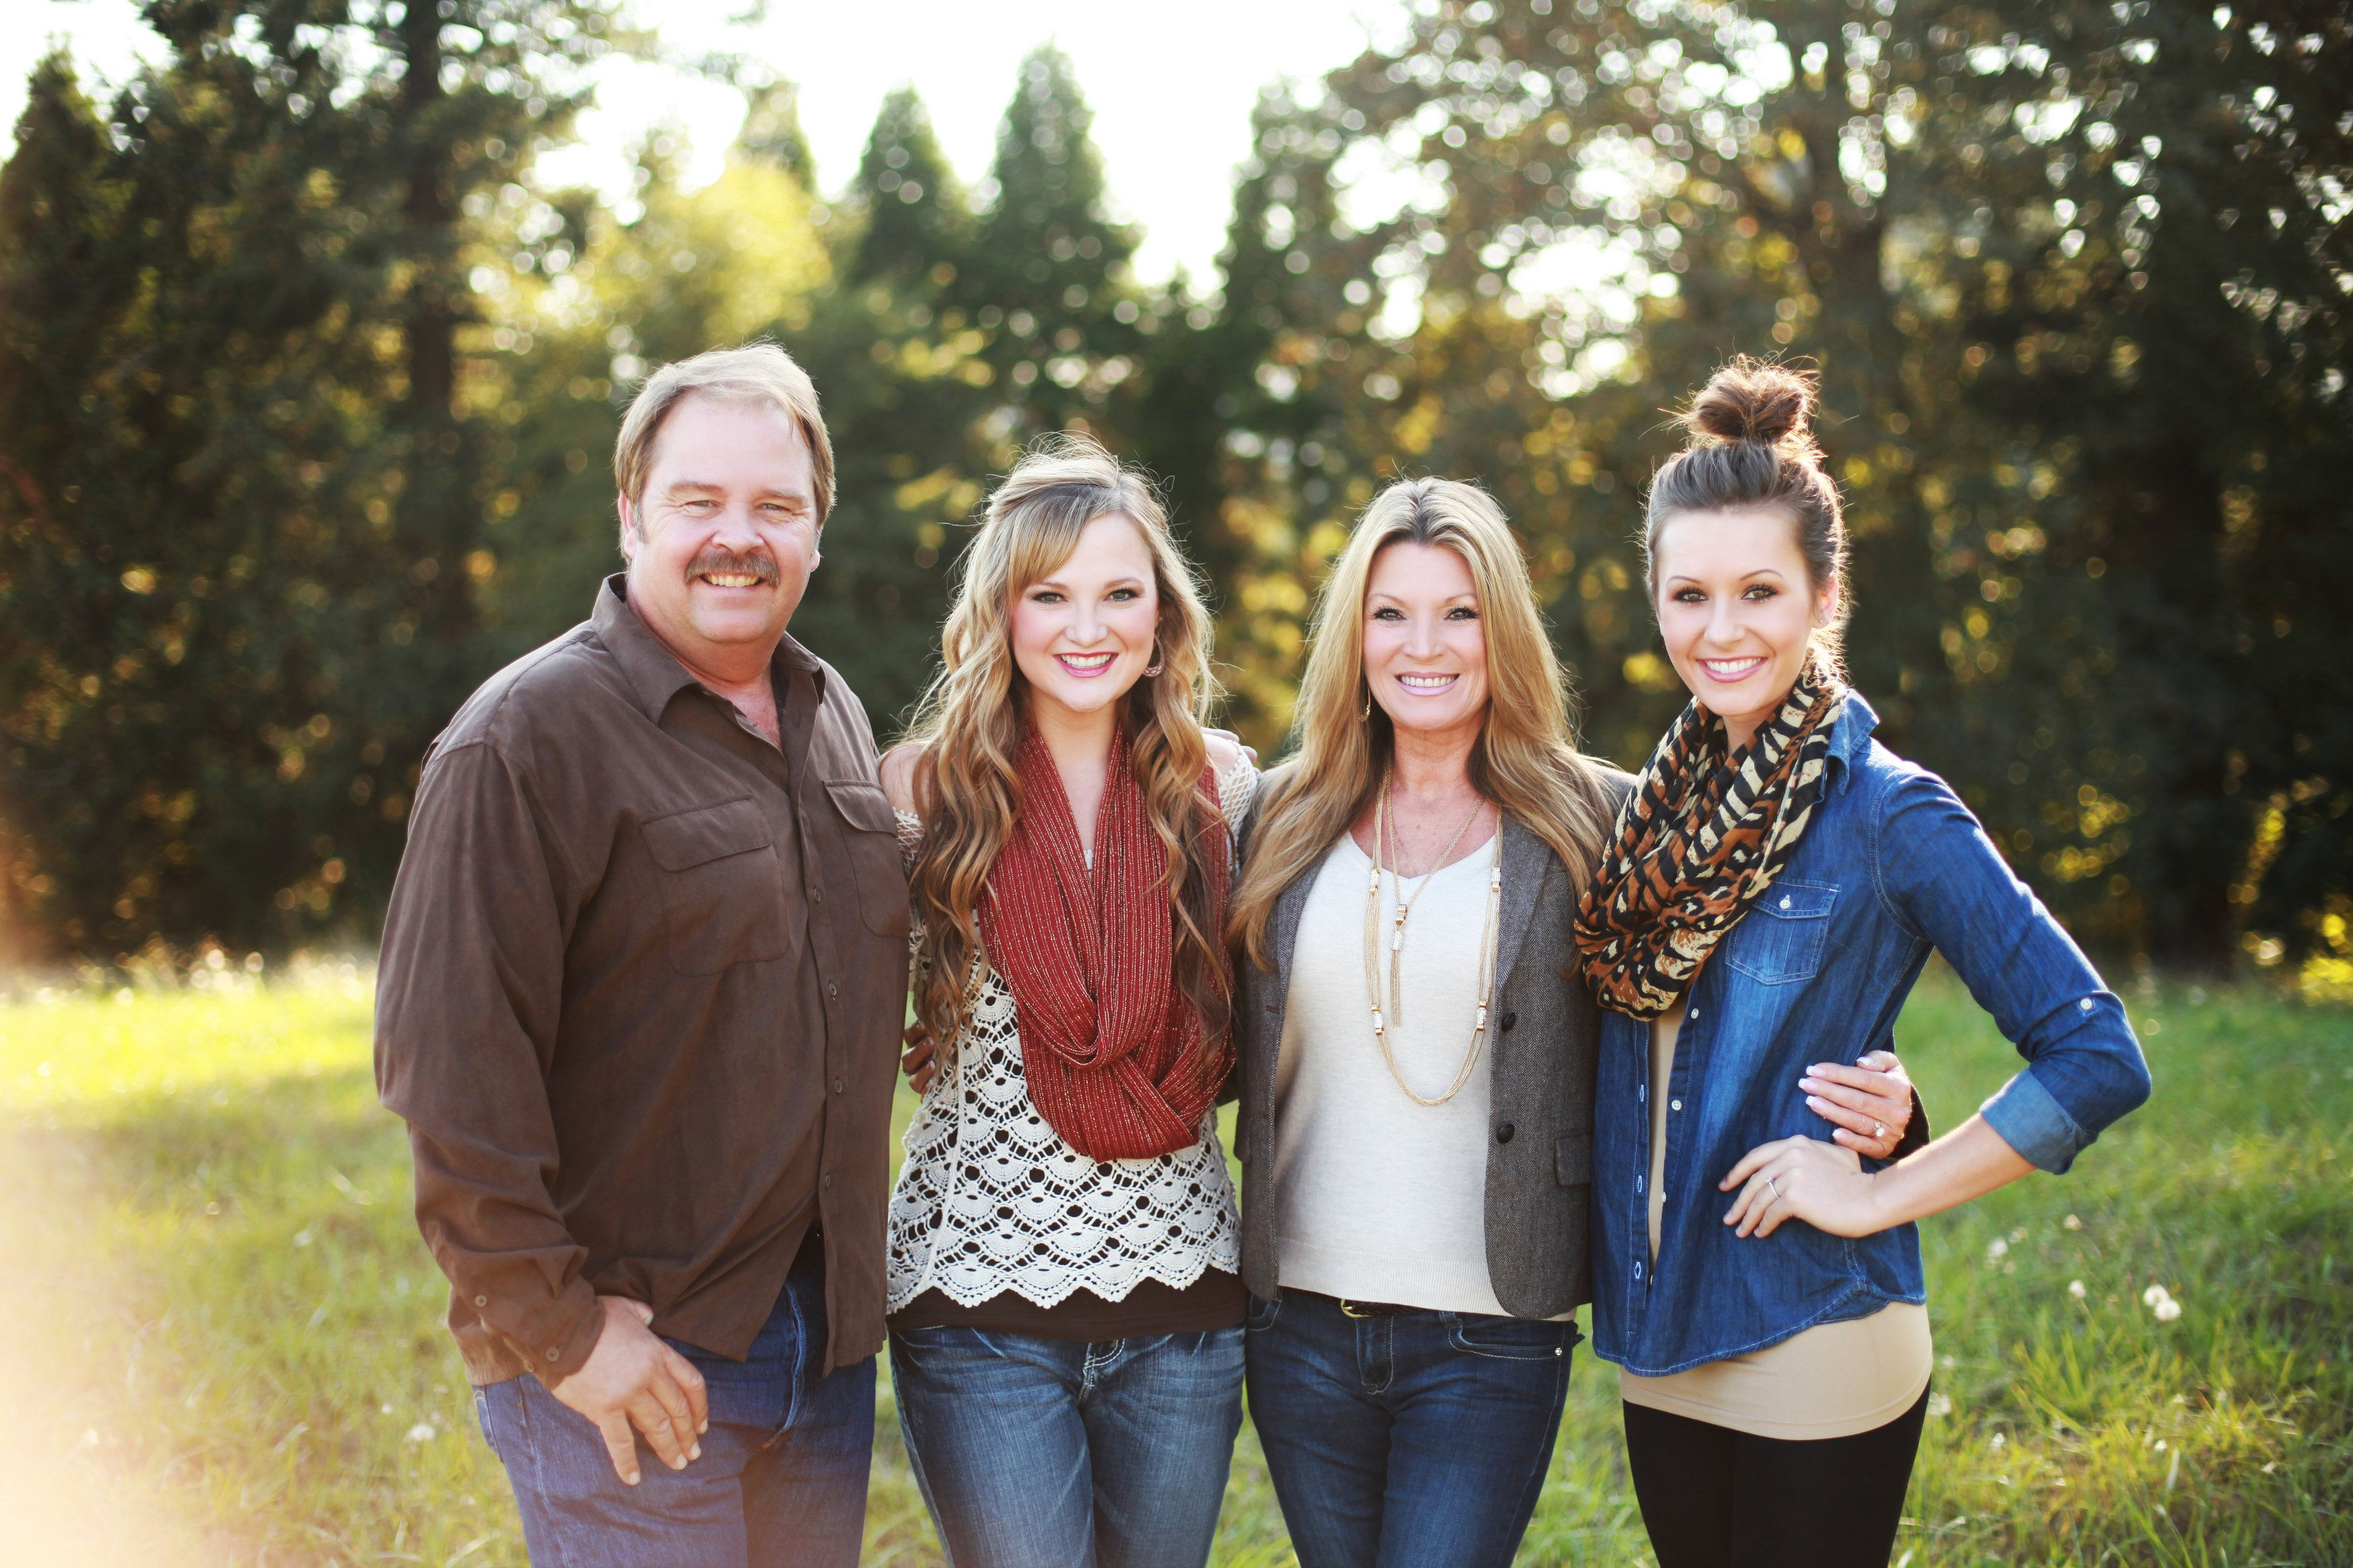 Family Photoshoot. What to wear. Haley Graham Photography